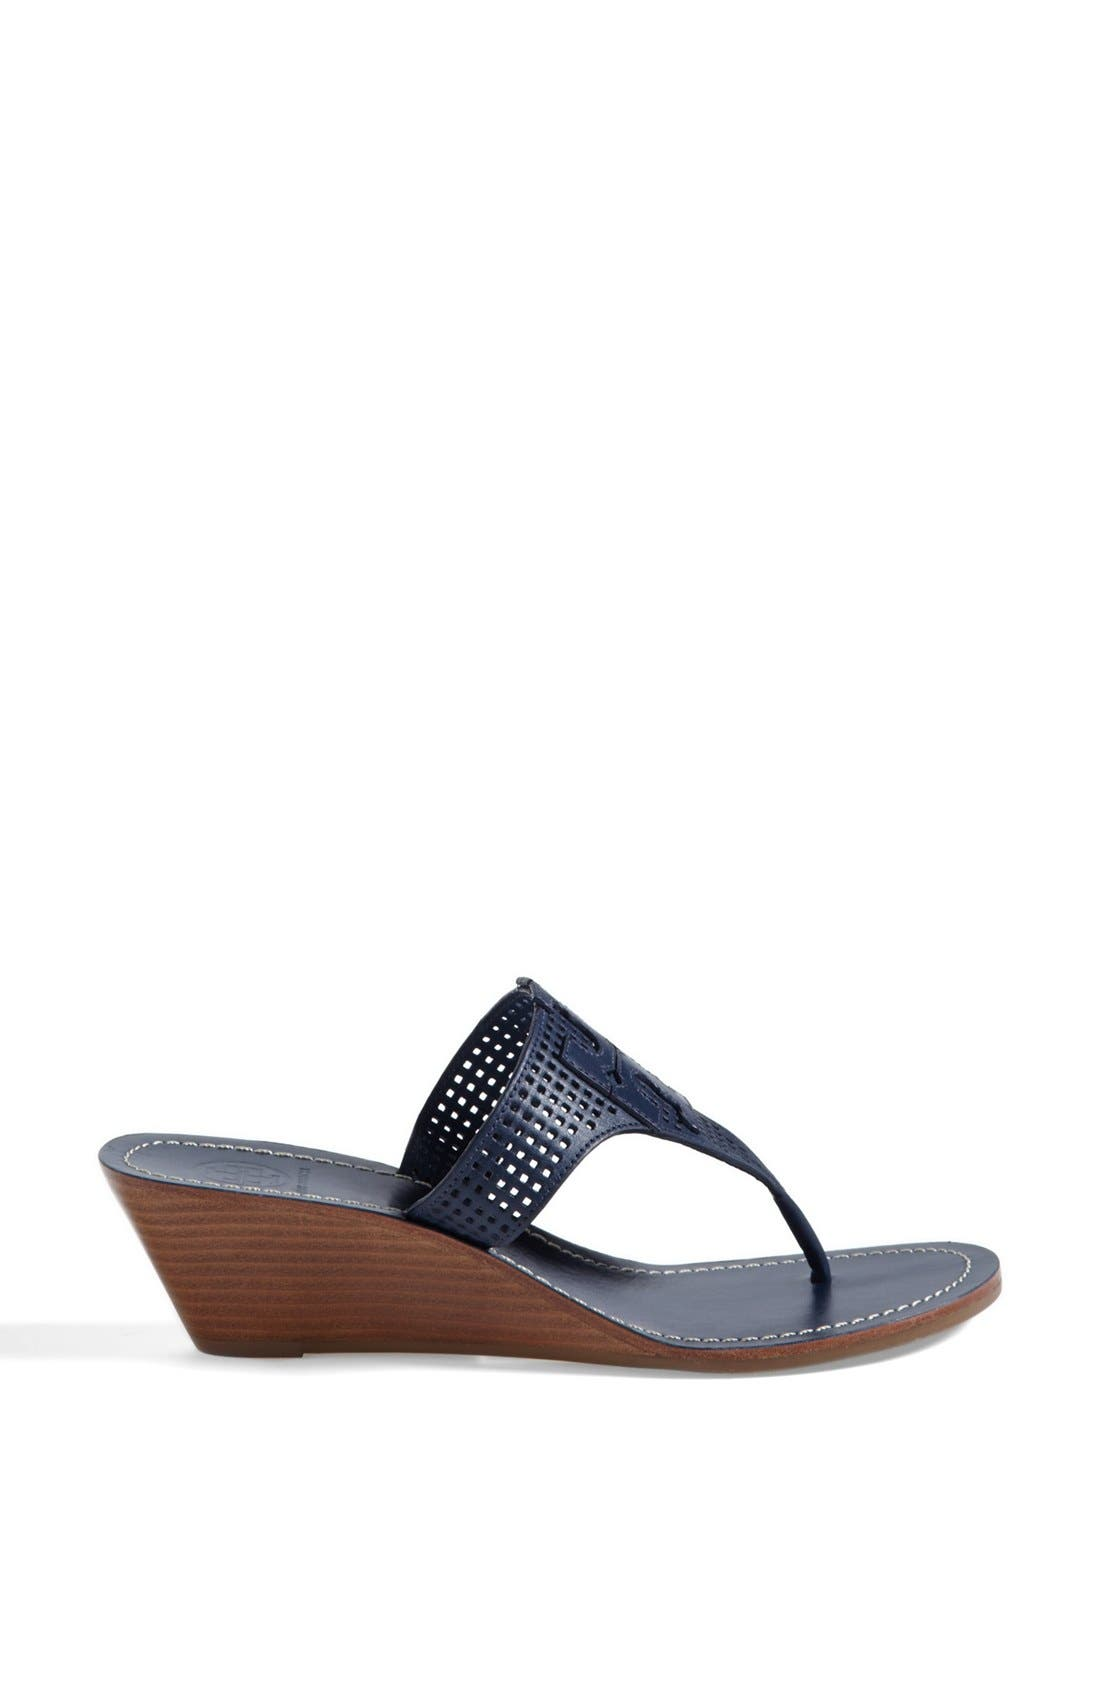 Alternate Image 4  - Tory Burch 'Mcfee' Wedge Sandal (Online Only)